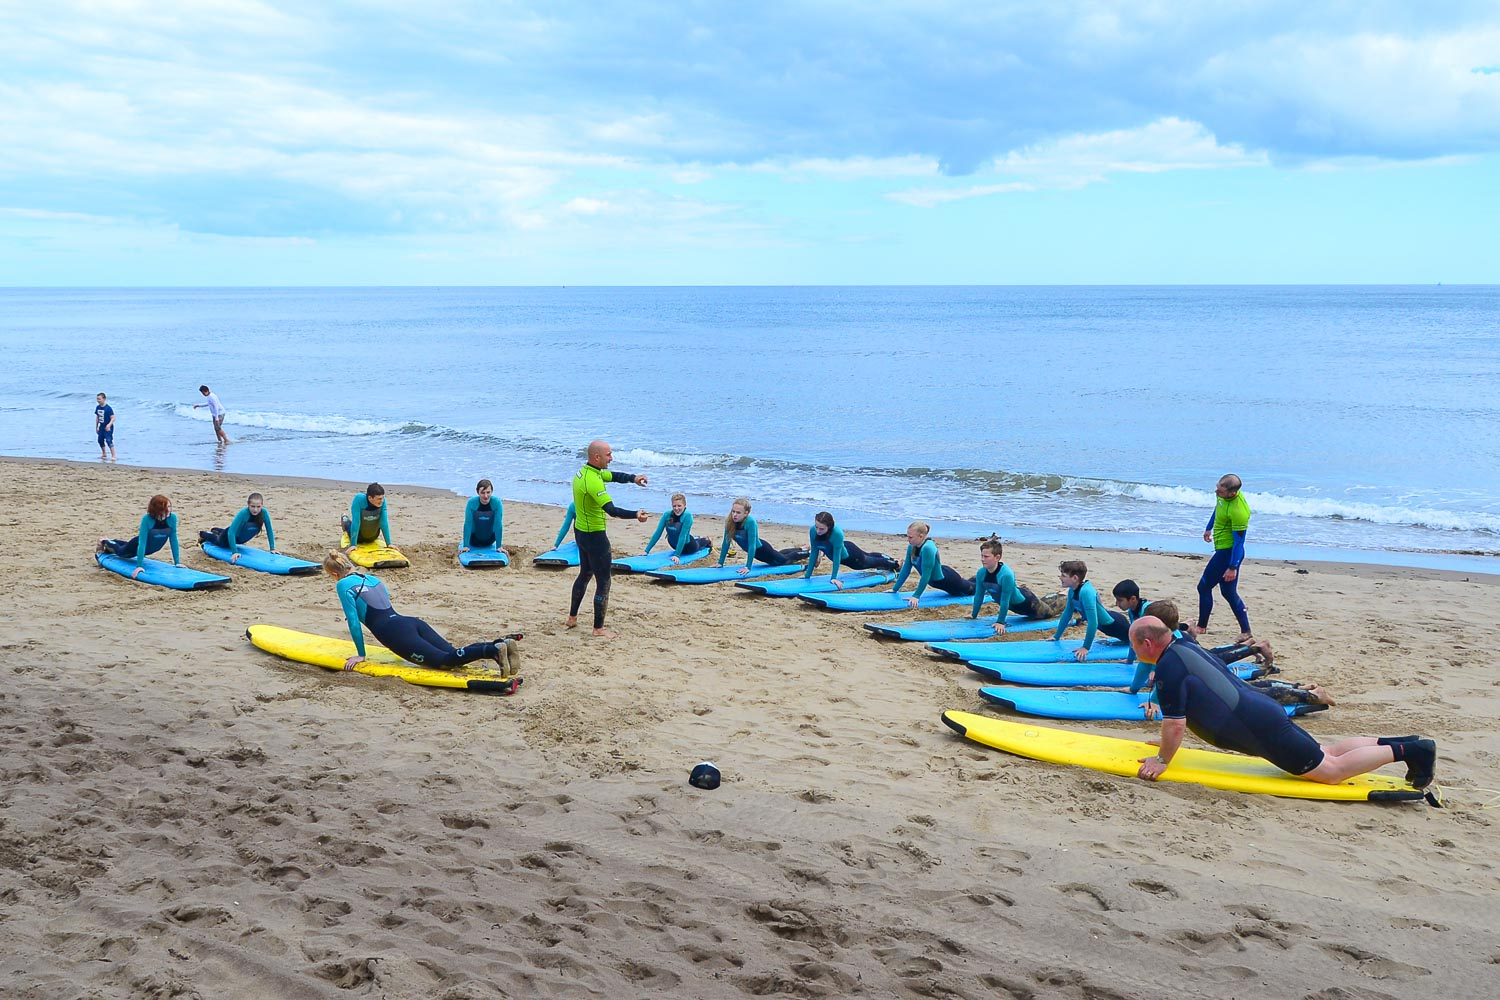 The start of a group surf lesson, learning on the beach!